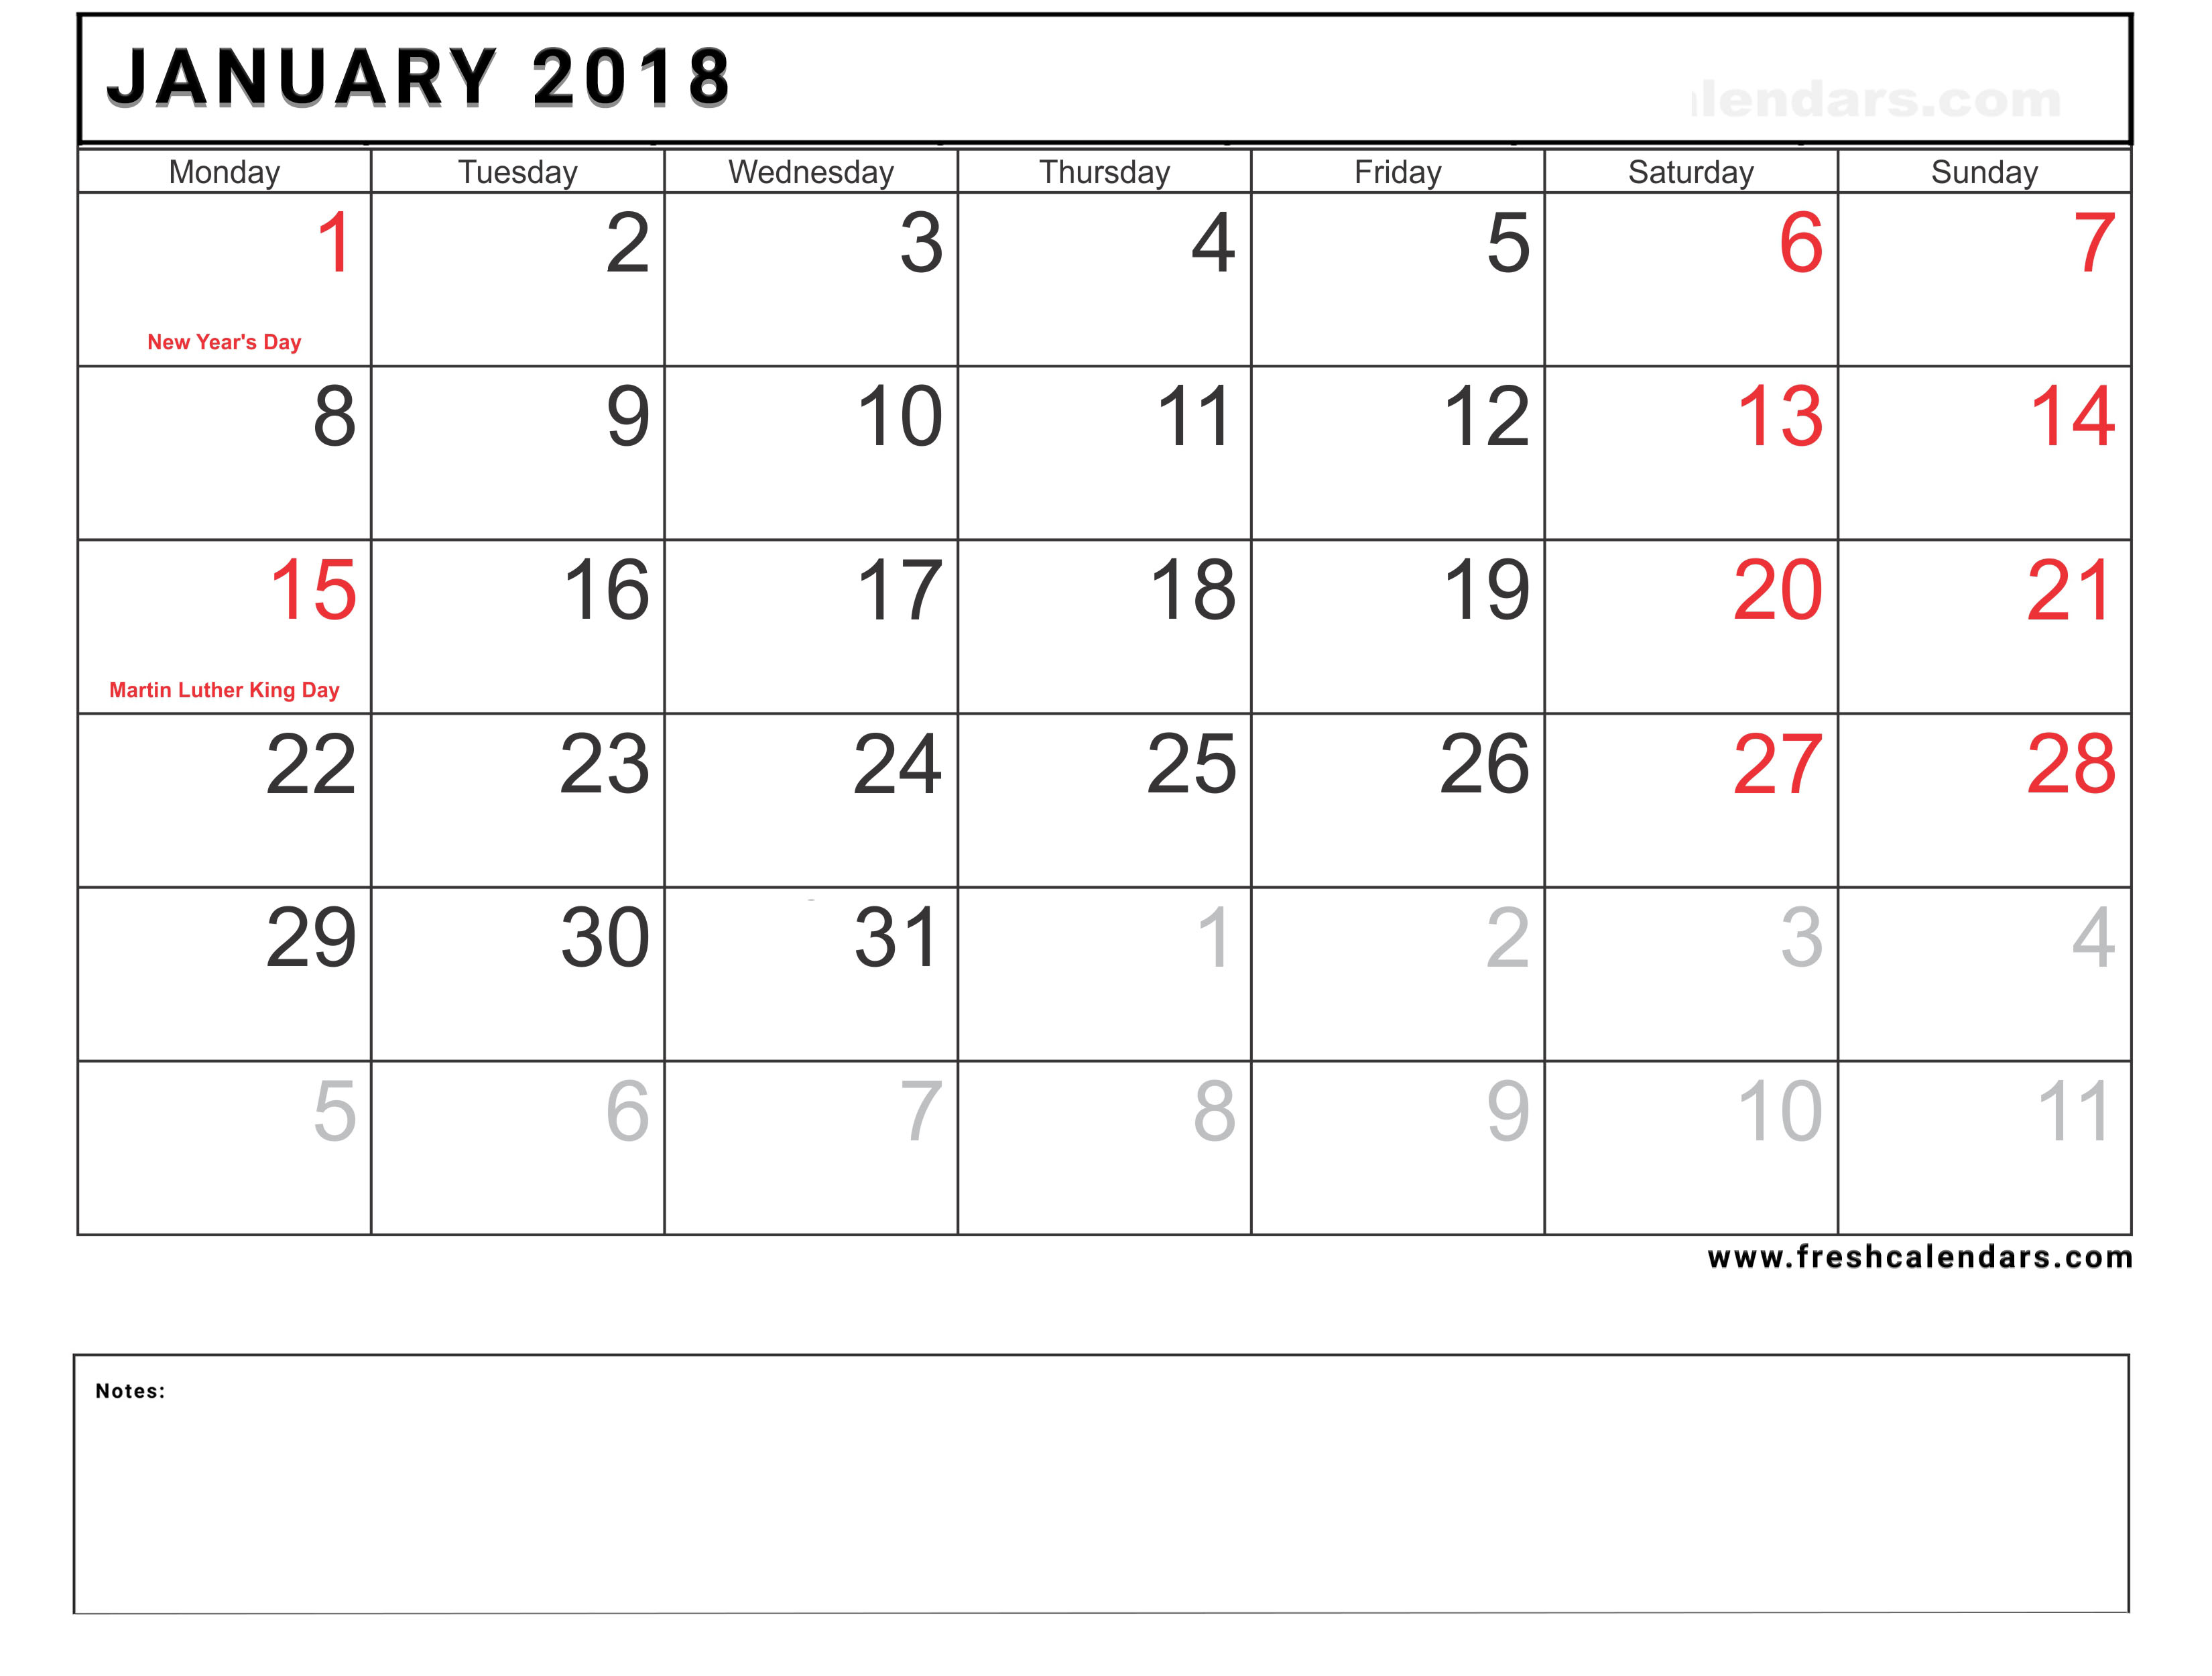 blank january 2018 calendar printable with holidays and notes